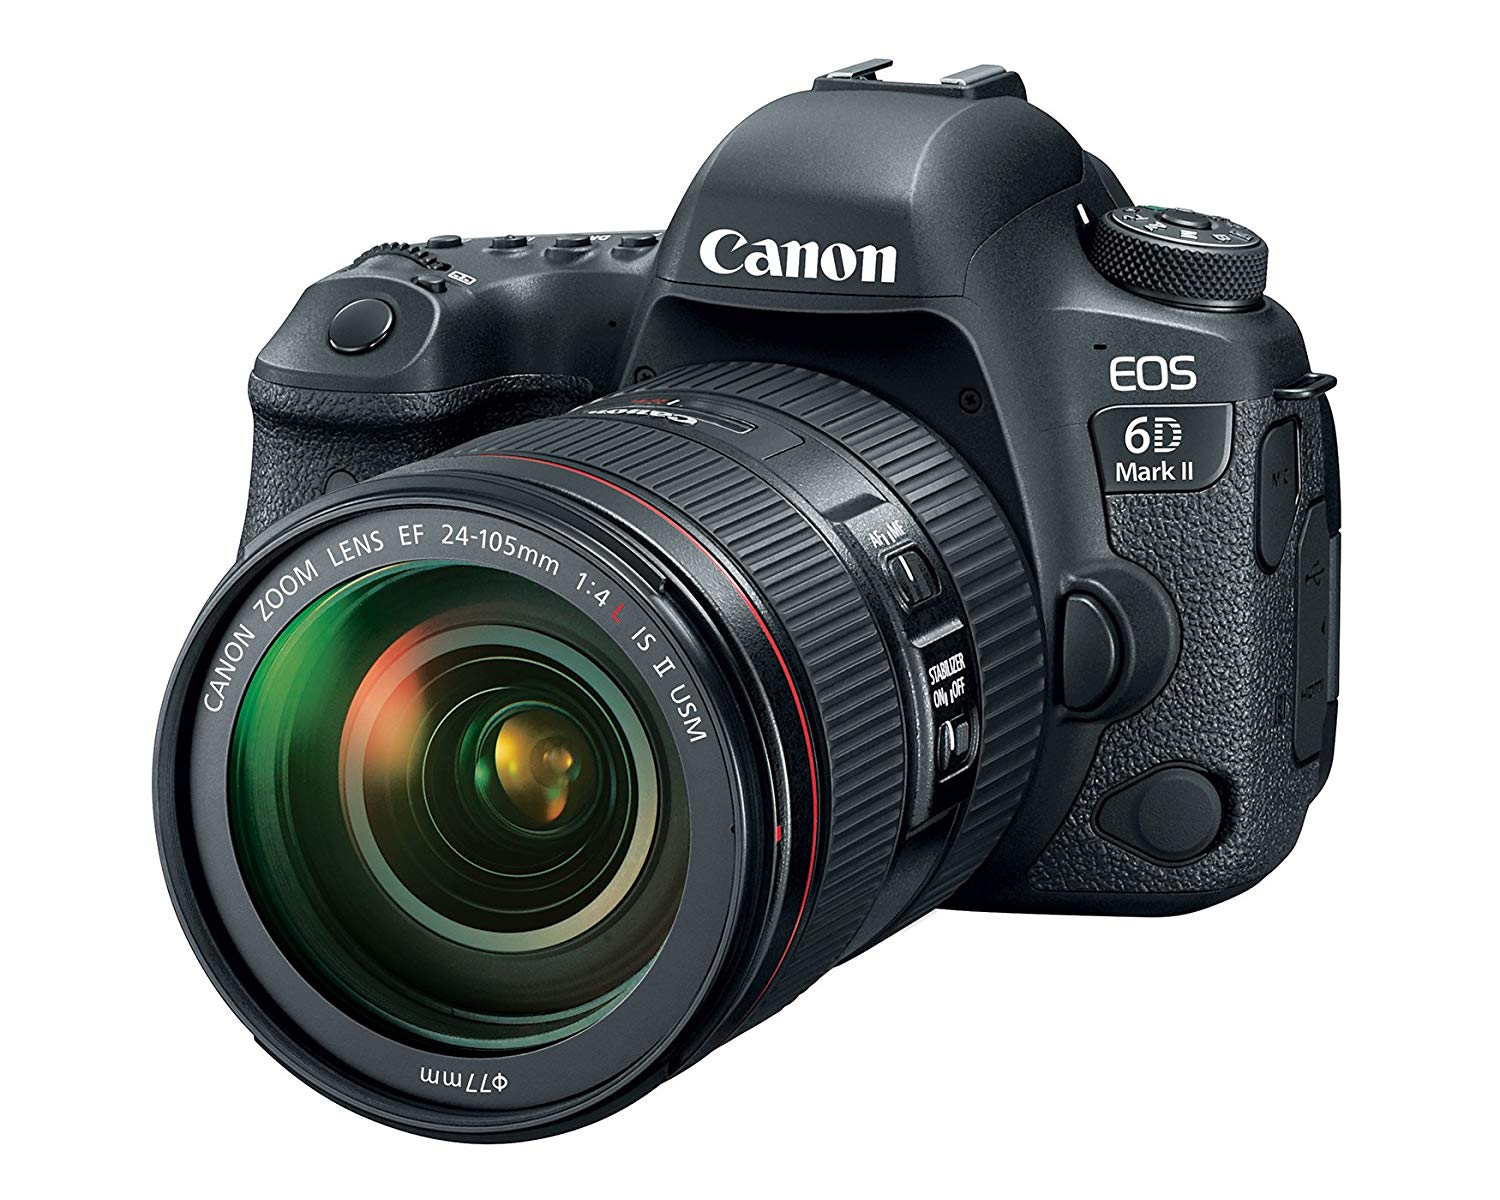 Canon EOS 6D Mark II DSLR Camera with 24-105mm f/4L II Lens (Black)